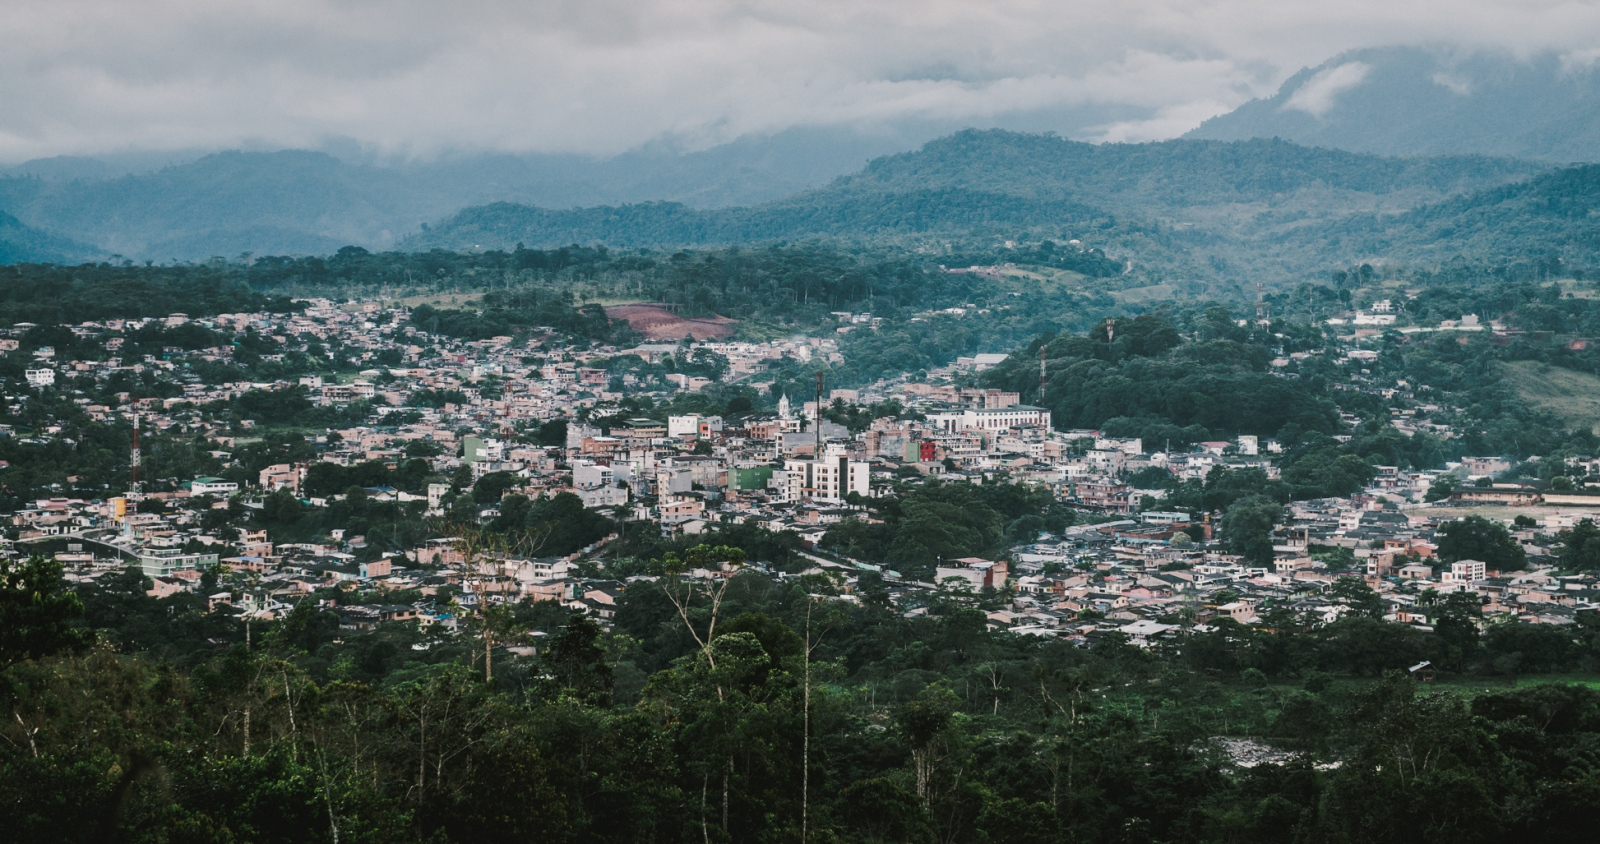 The city of Mocoa, Putumayo, Colombia, seen from the jungle across the river.